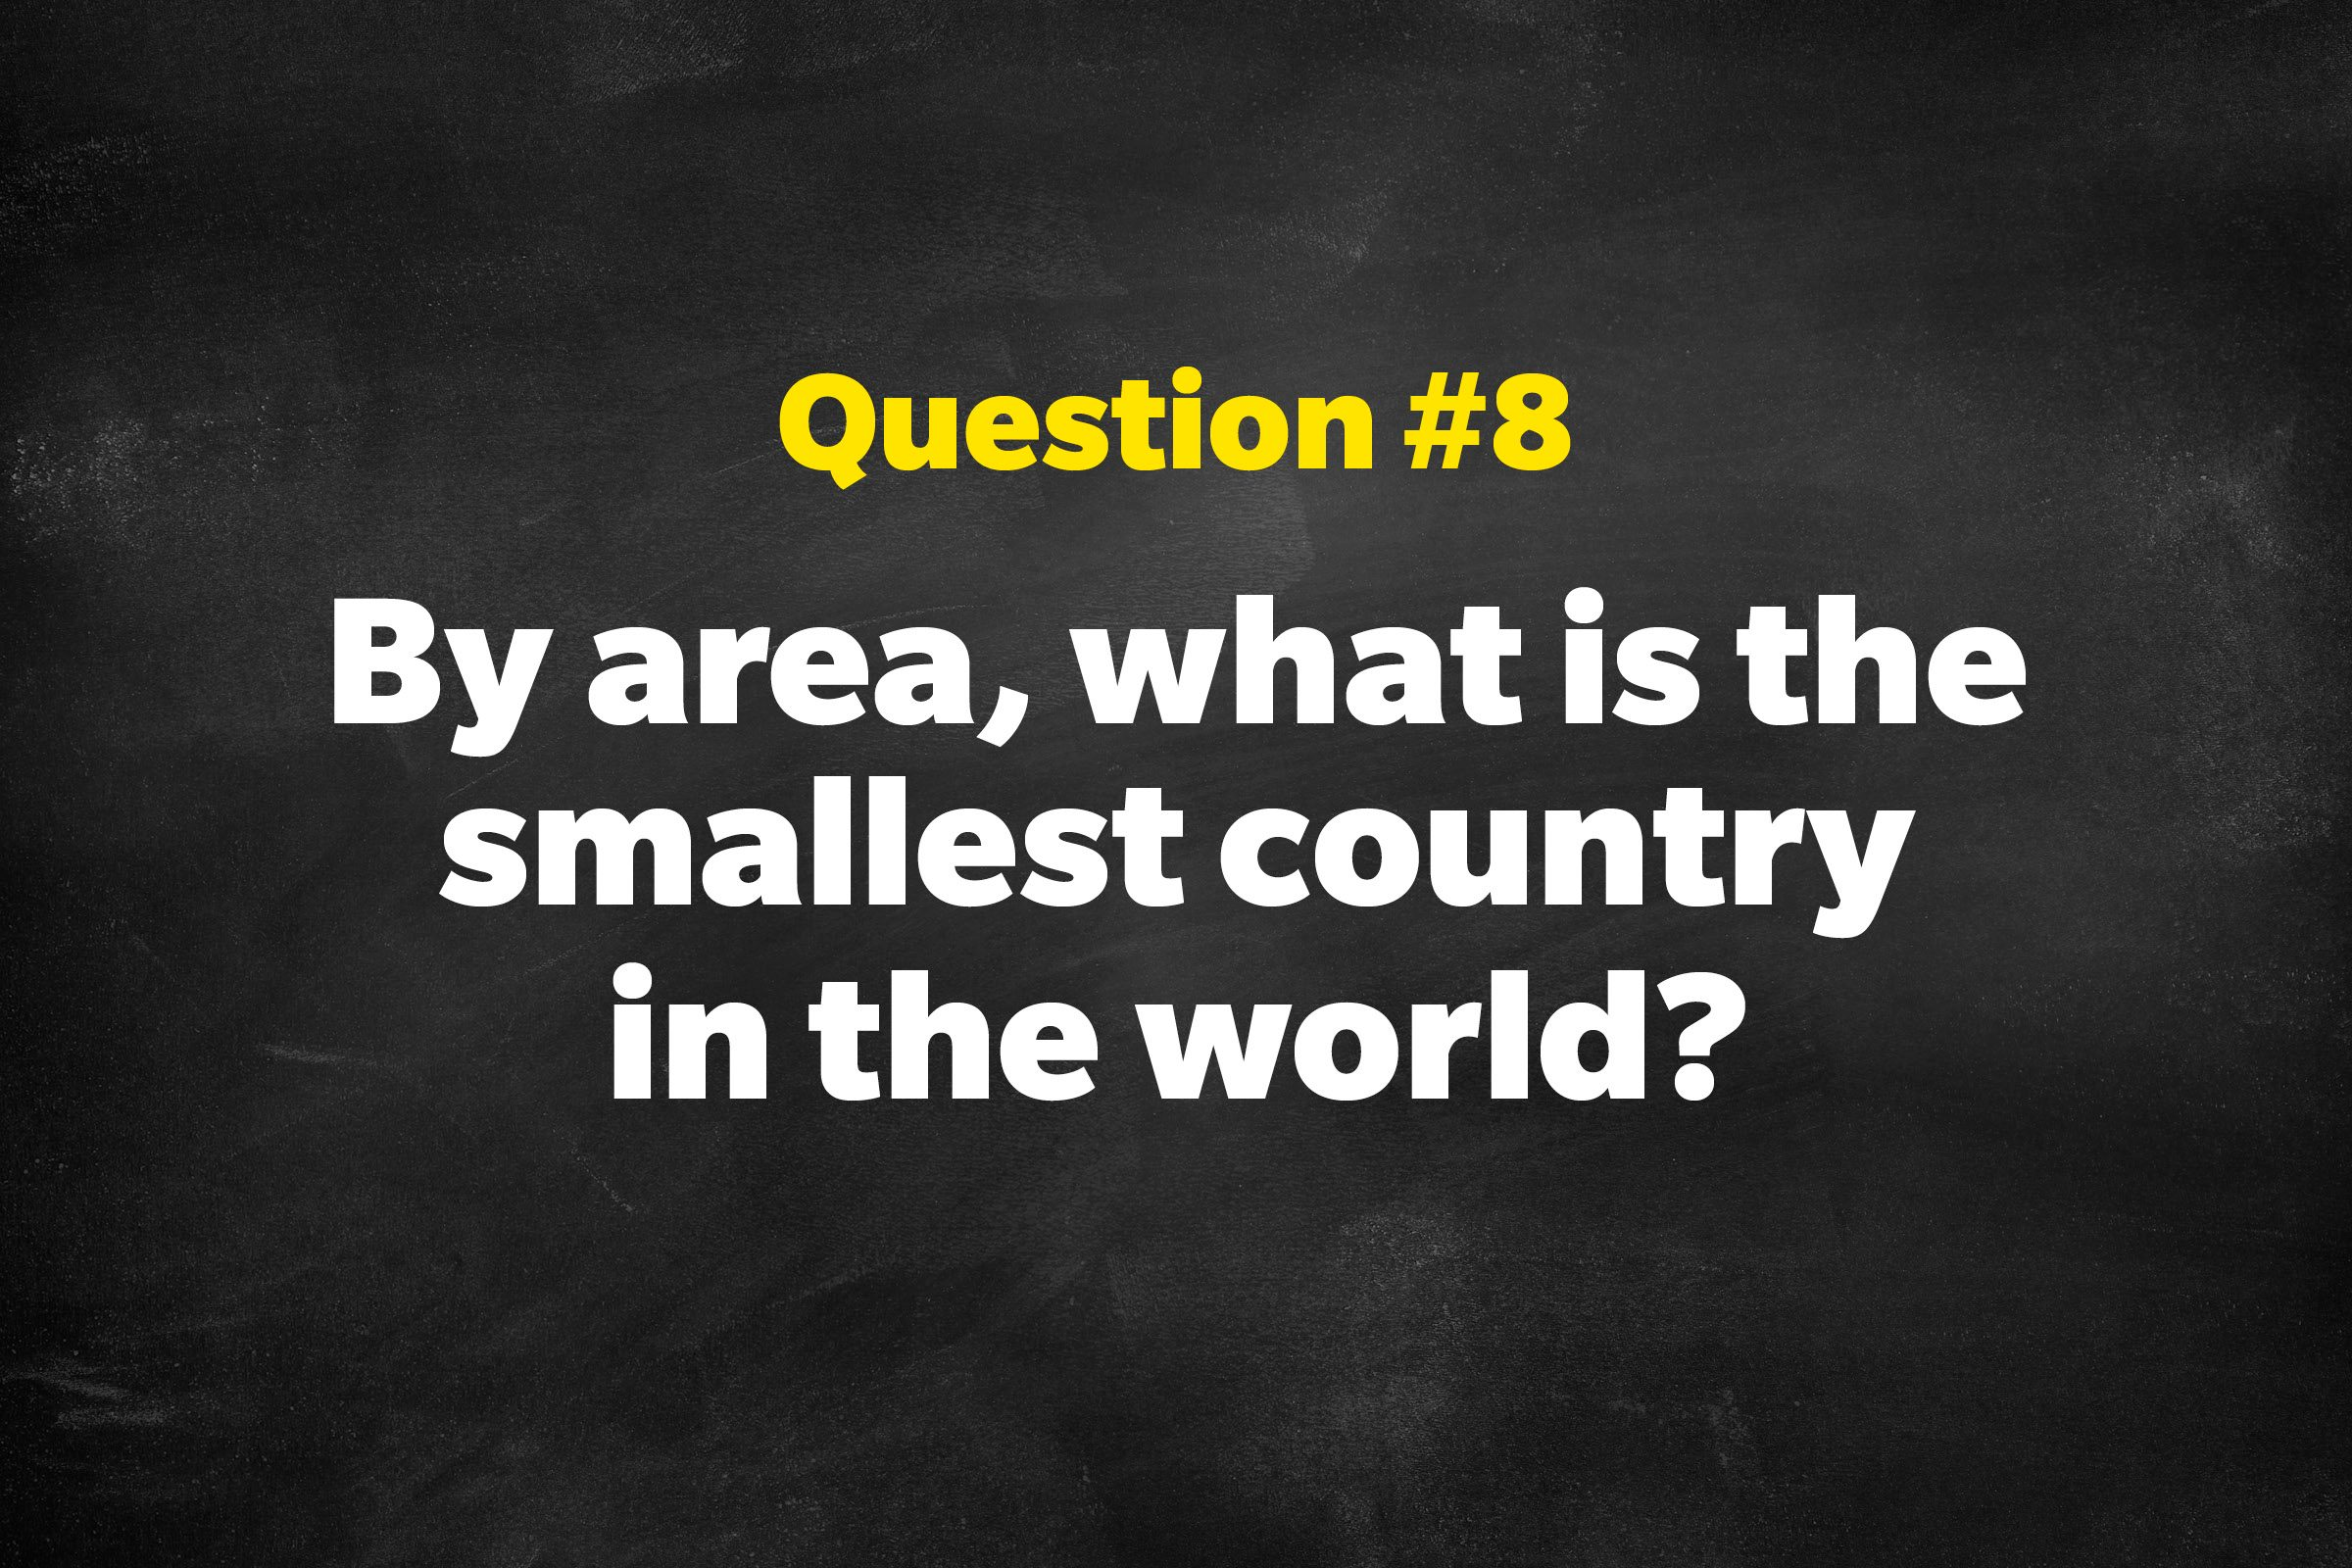 Question #8: By area, what is the smallest country in the world?